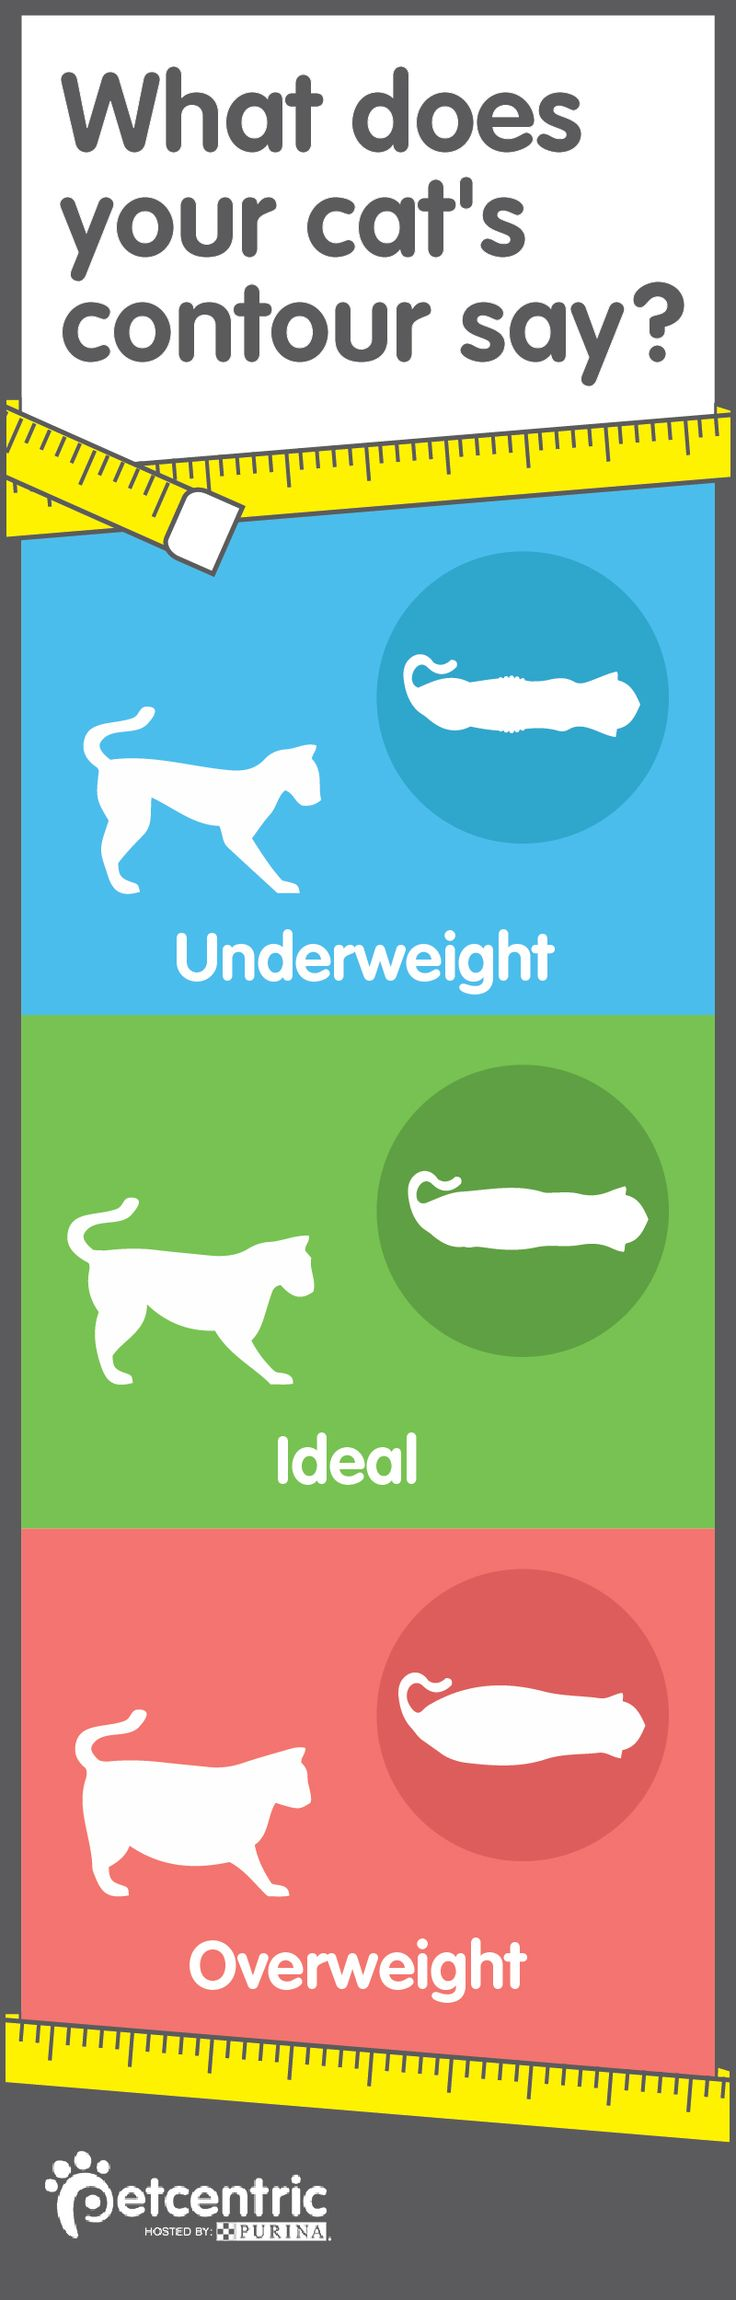 A proper diet will keep your best friend happy and healthy! Pin this and check out Petcentric.com so you can continue to see if your cat is underweight, overweight or just the right size. This is so helpful it even tells you what to do if your cat is at an unhealthy weight.